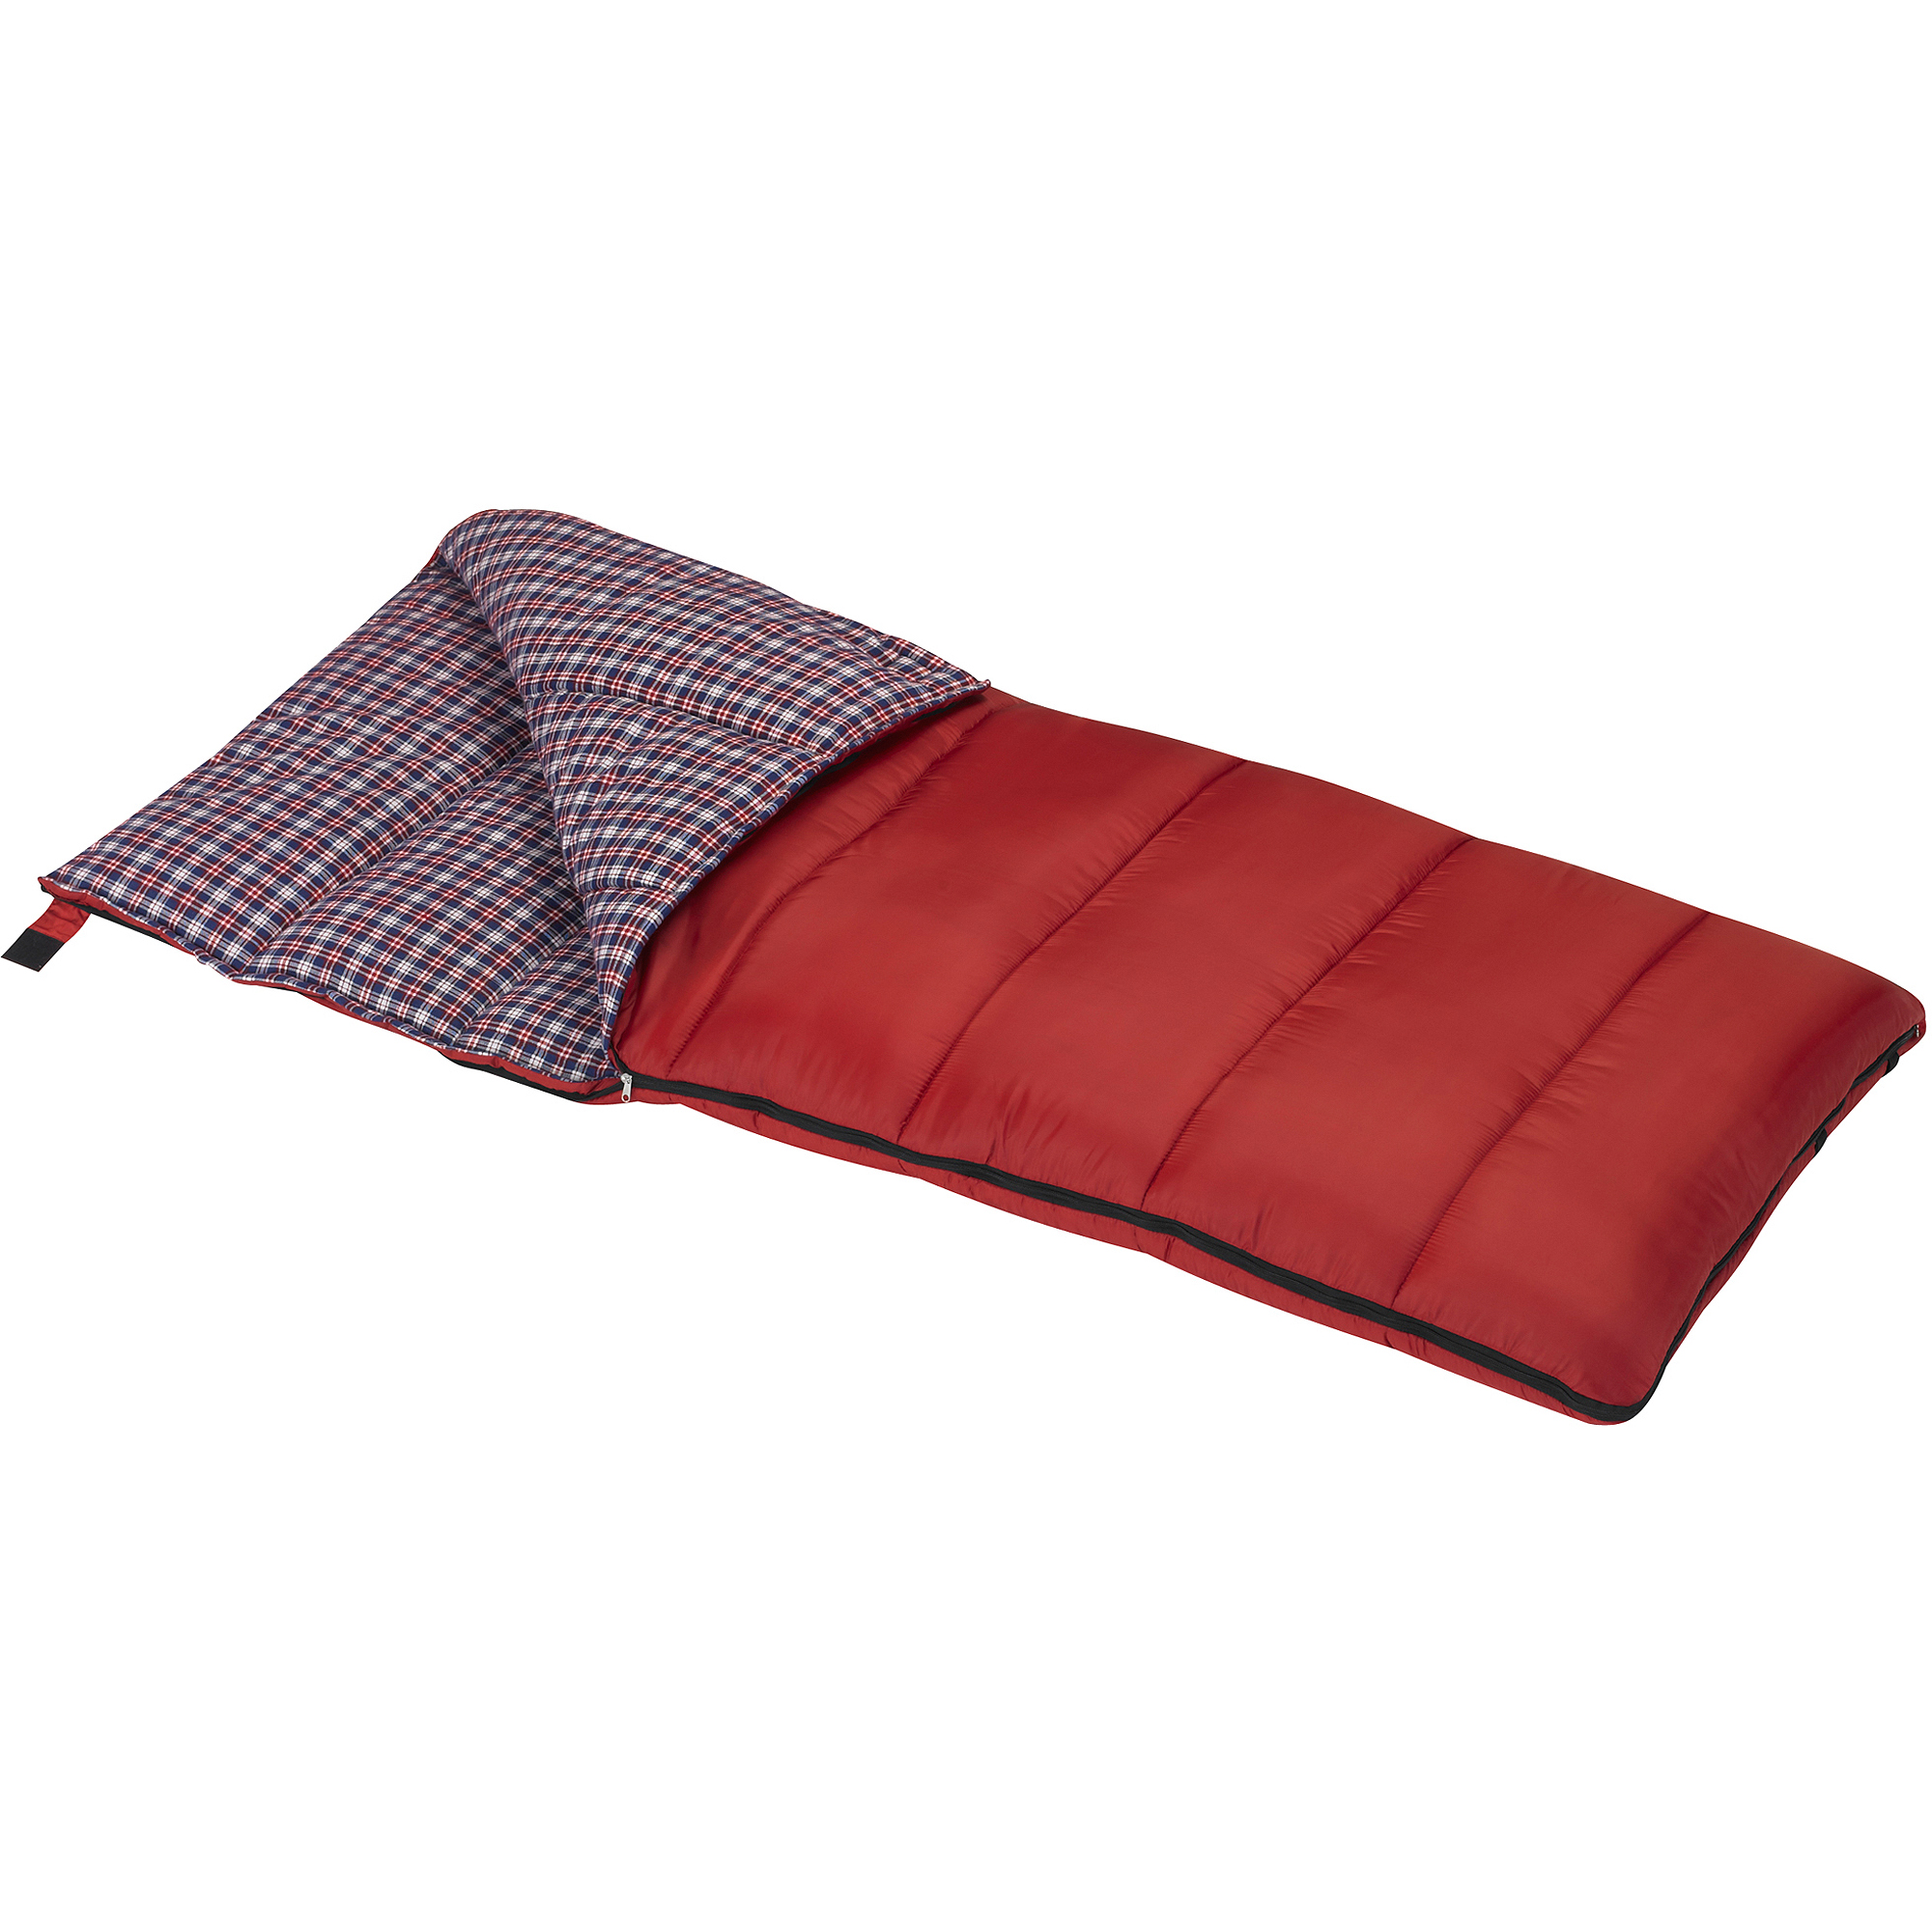 Wenzel Cardinal 30-Degree Sleeping Bag, Red by Overstock